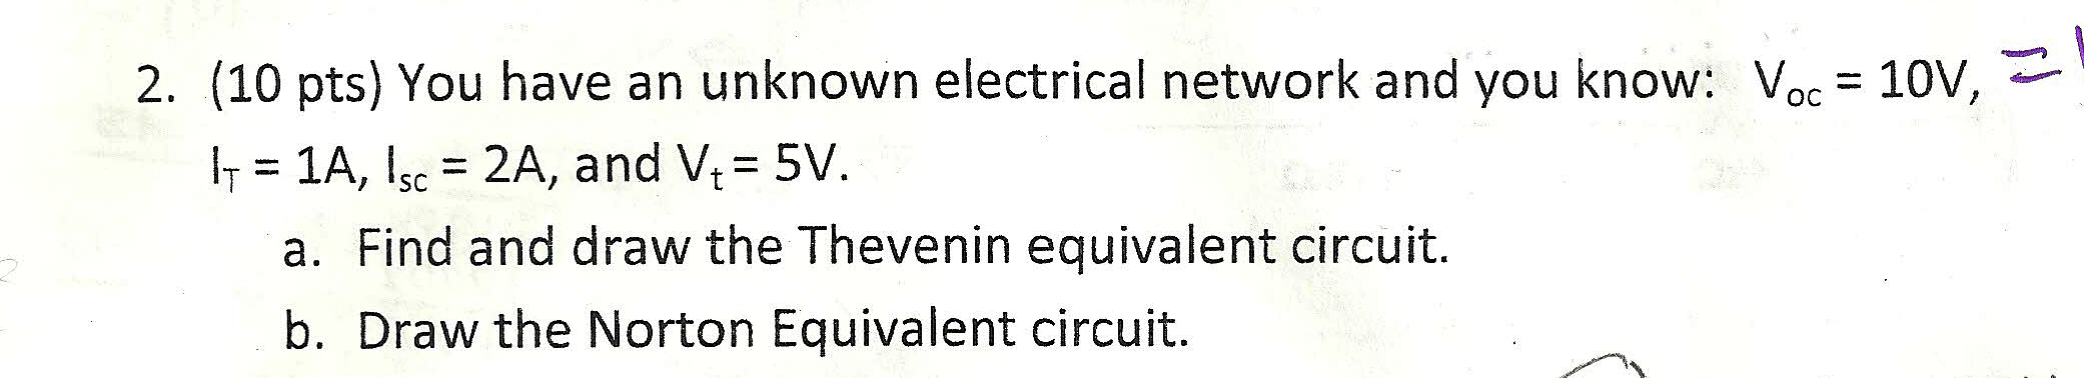 You have an unknown electrical network and you kno